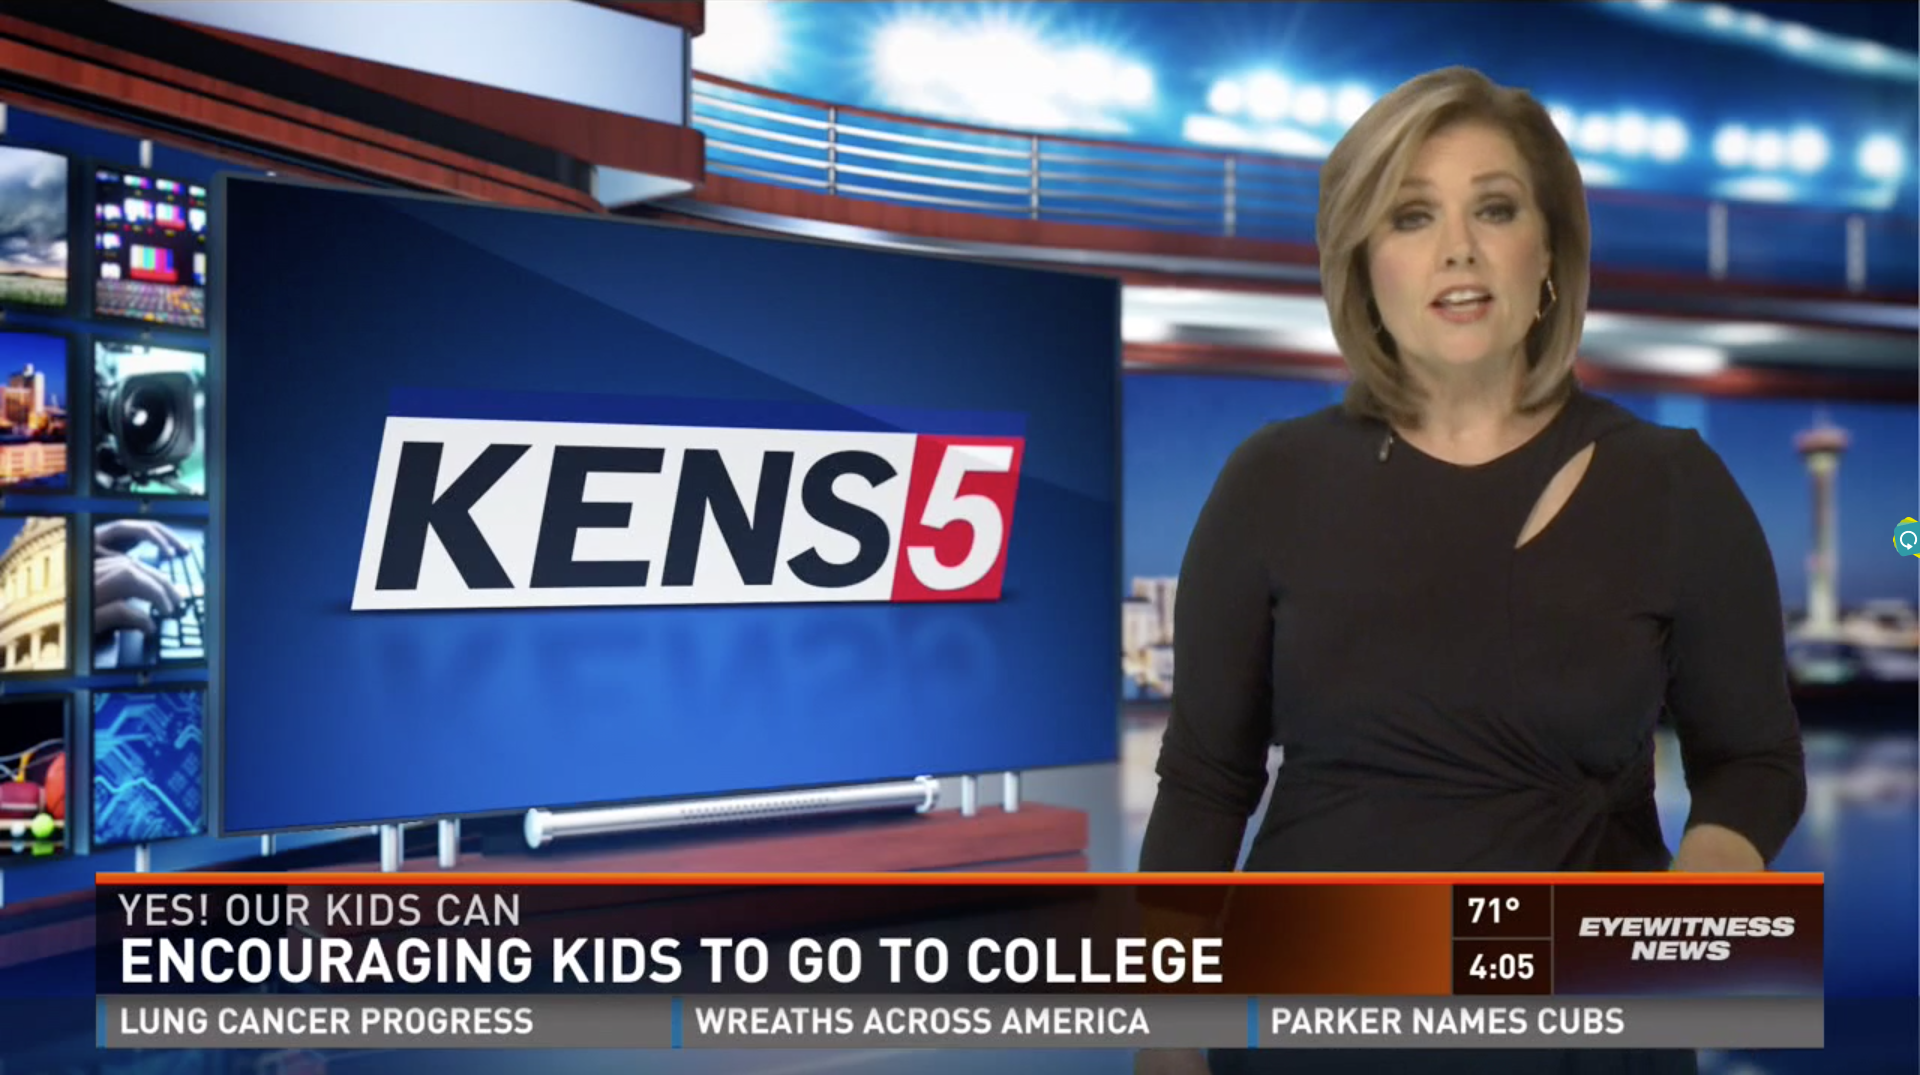 KENS 5 Announce Implementation of YOKC Somerset